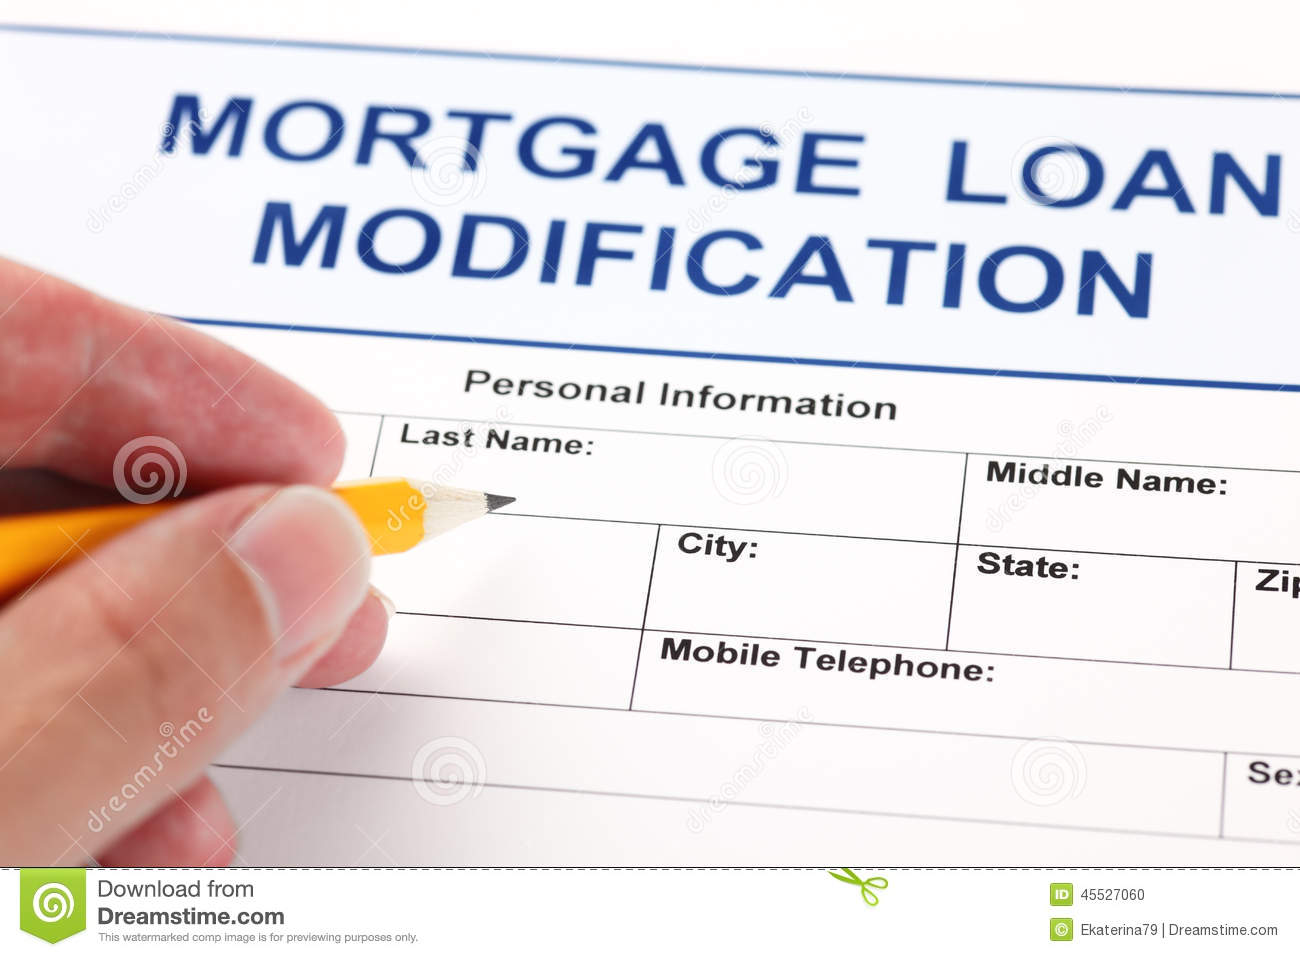 Application for a loan modification : Can i get a payday loan in pa